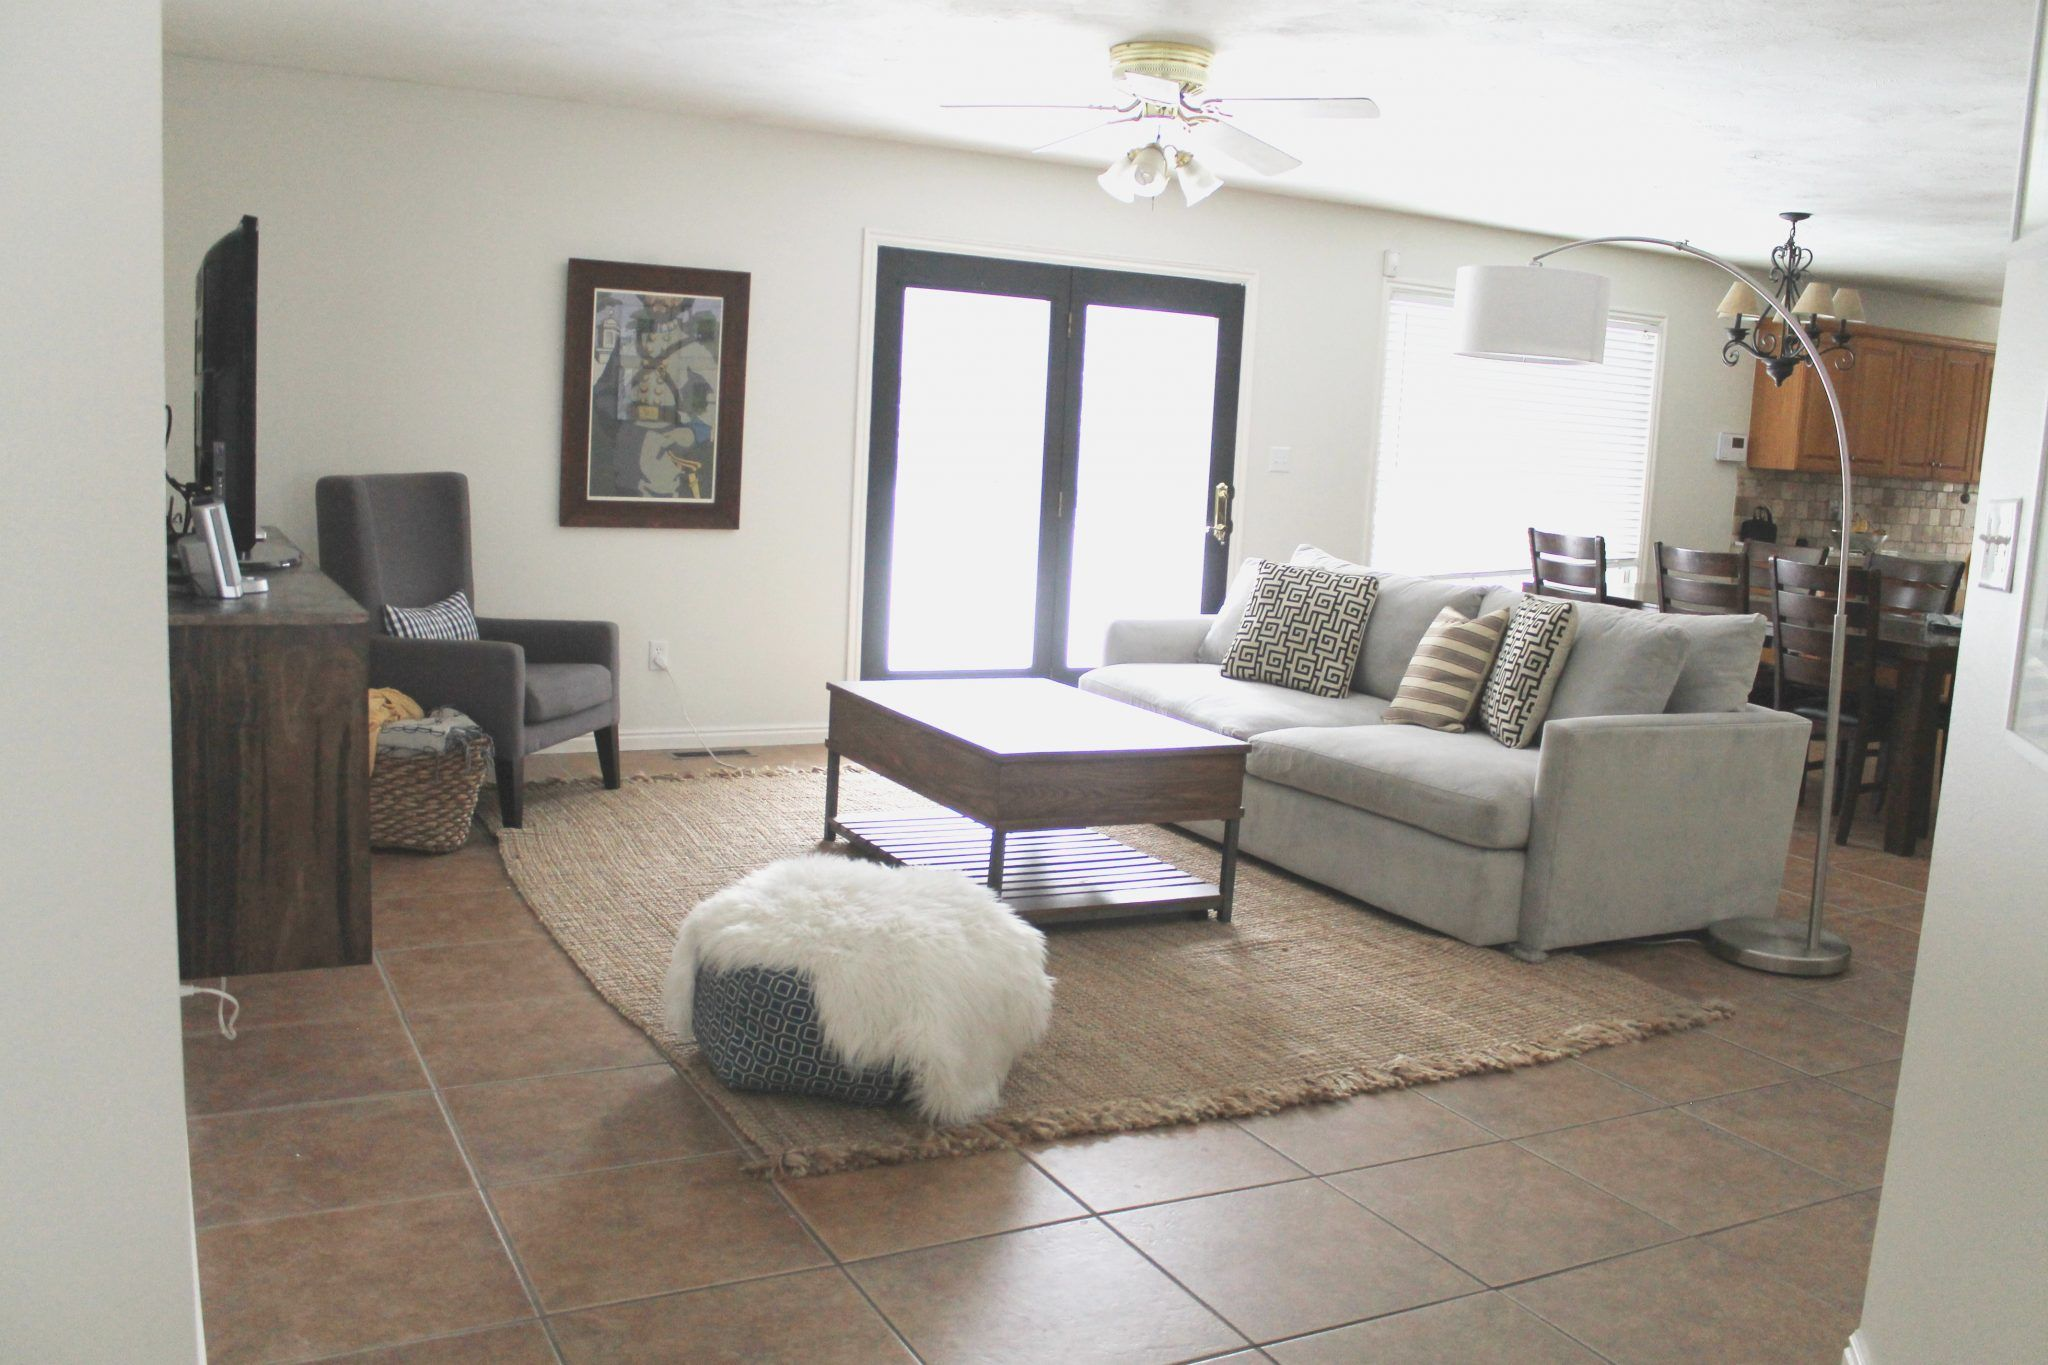 Large Rugs for Living Room - area rugs for living room ideas, big ...